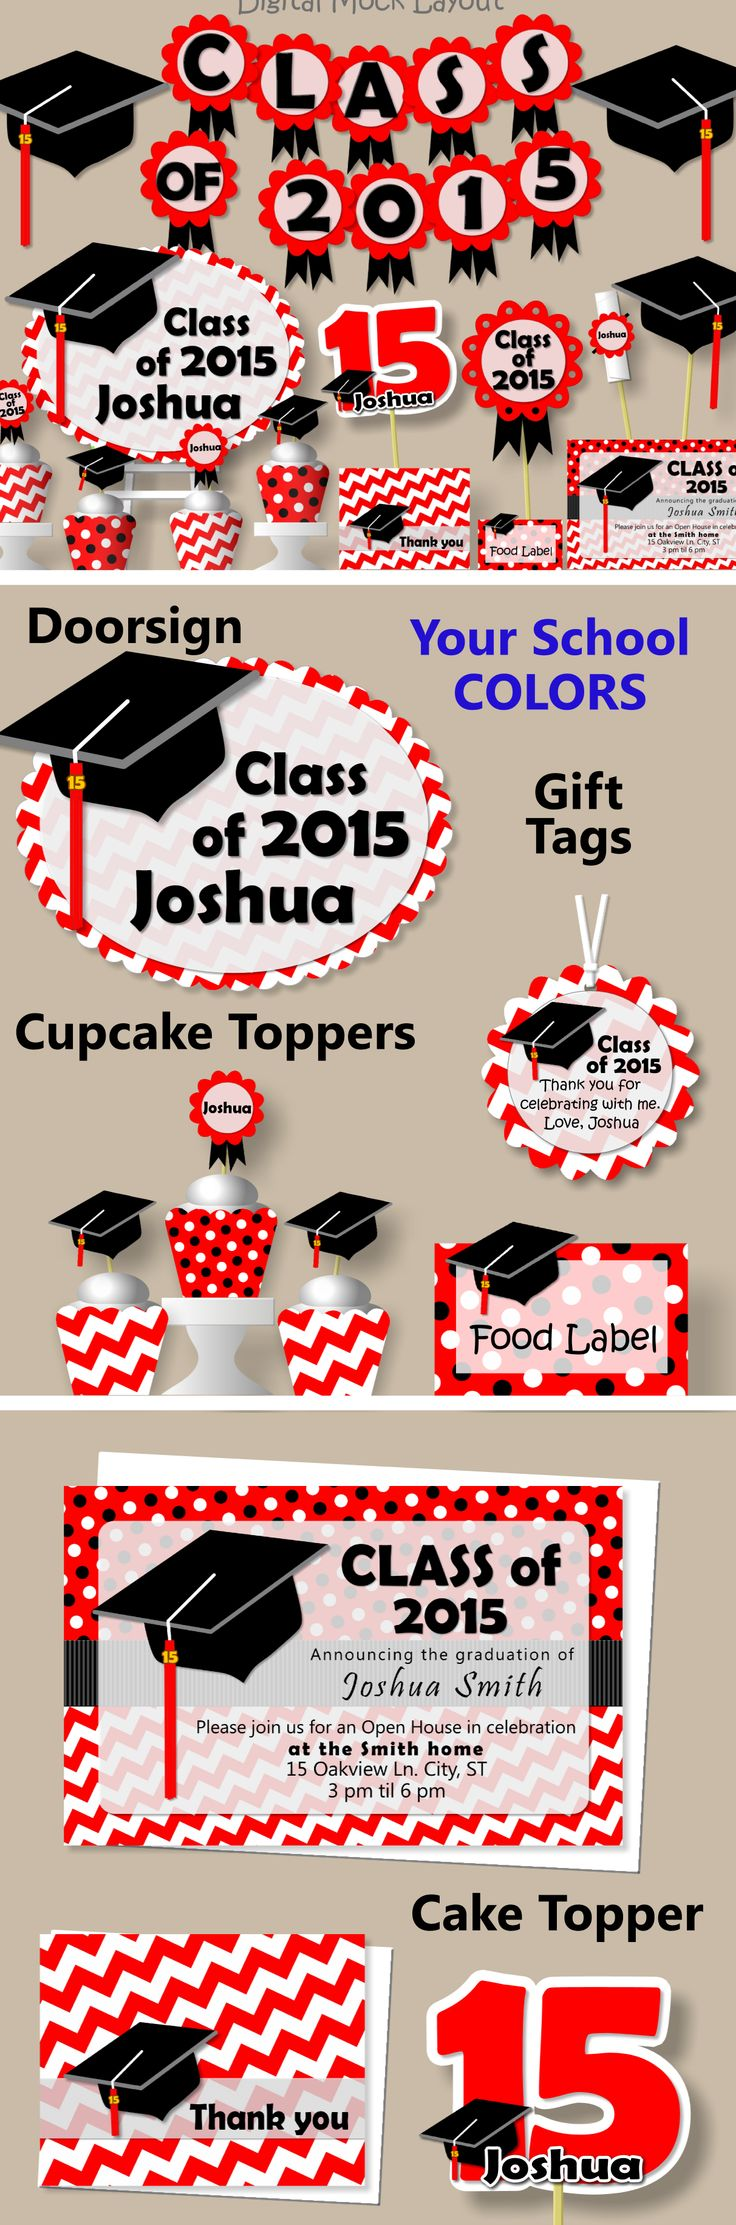 Graduation Party Decoration with Your School Colors - Banner, Sign, Invites, Favor Tags, Cake Toppers, Thank You Cards #bcpaperdesigns